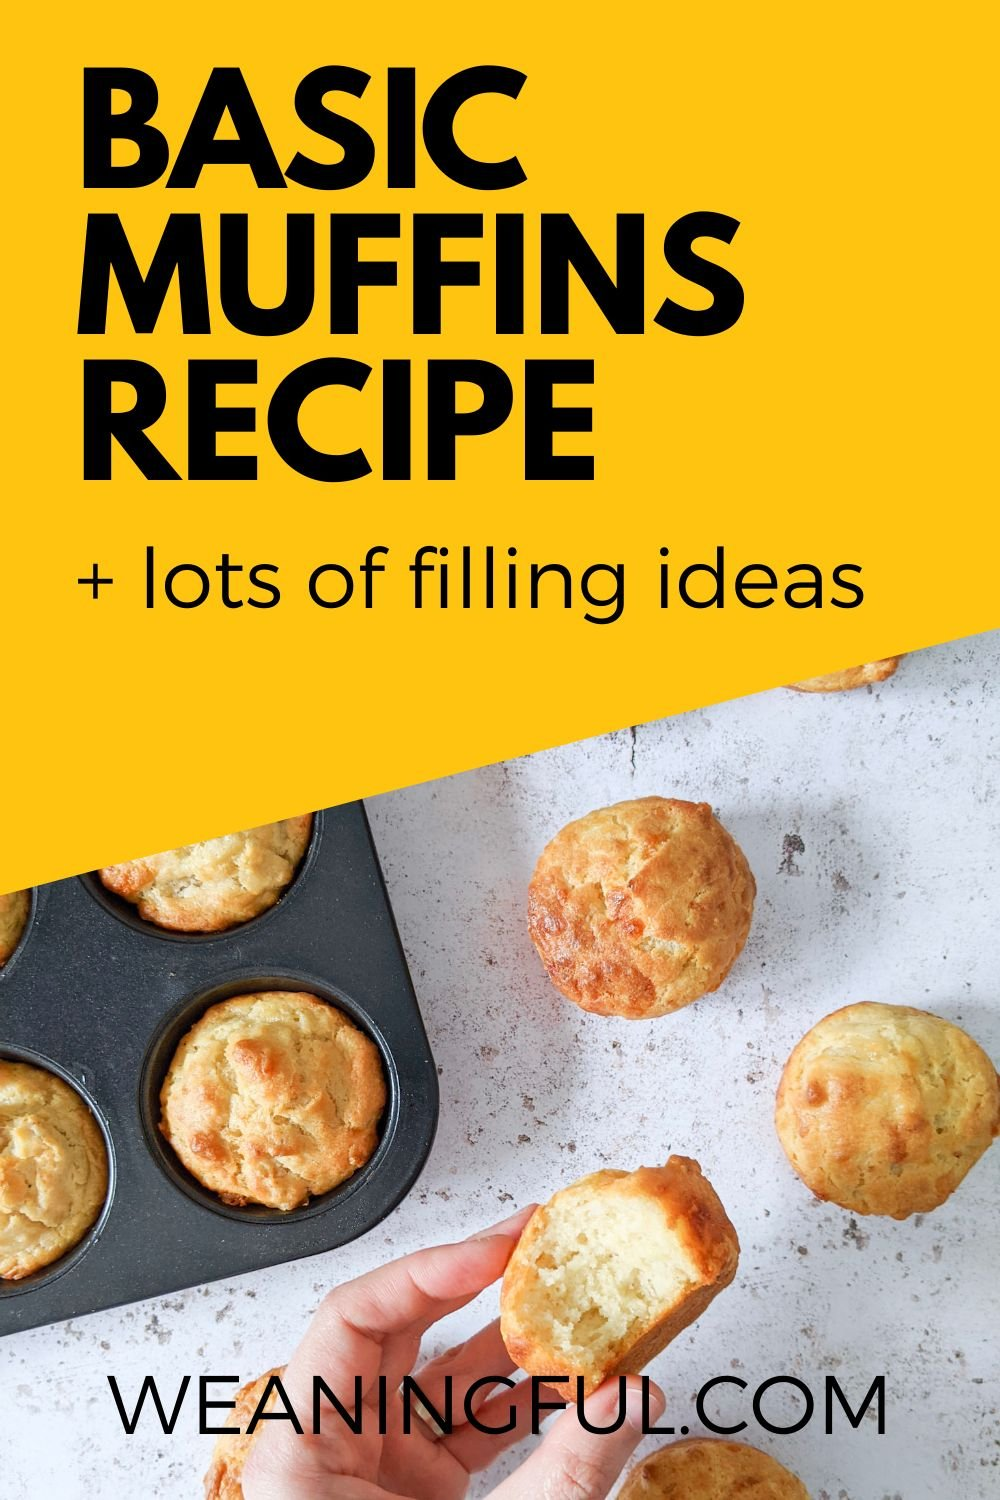 This basic muffins recipe is great for baby, toddlers and older kids and can be filled with almost anything you can think of. Great finger food and also lunchbox idea.